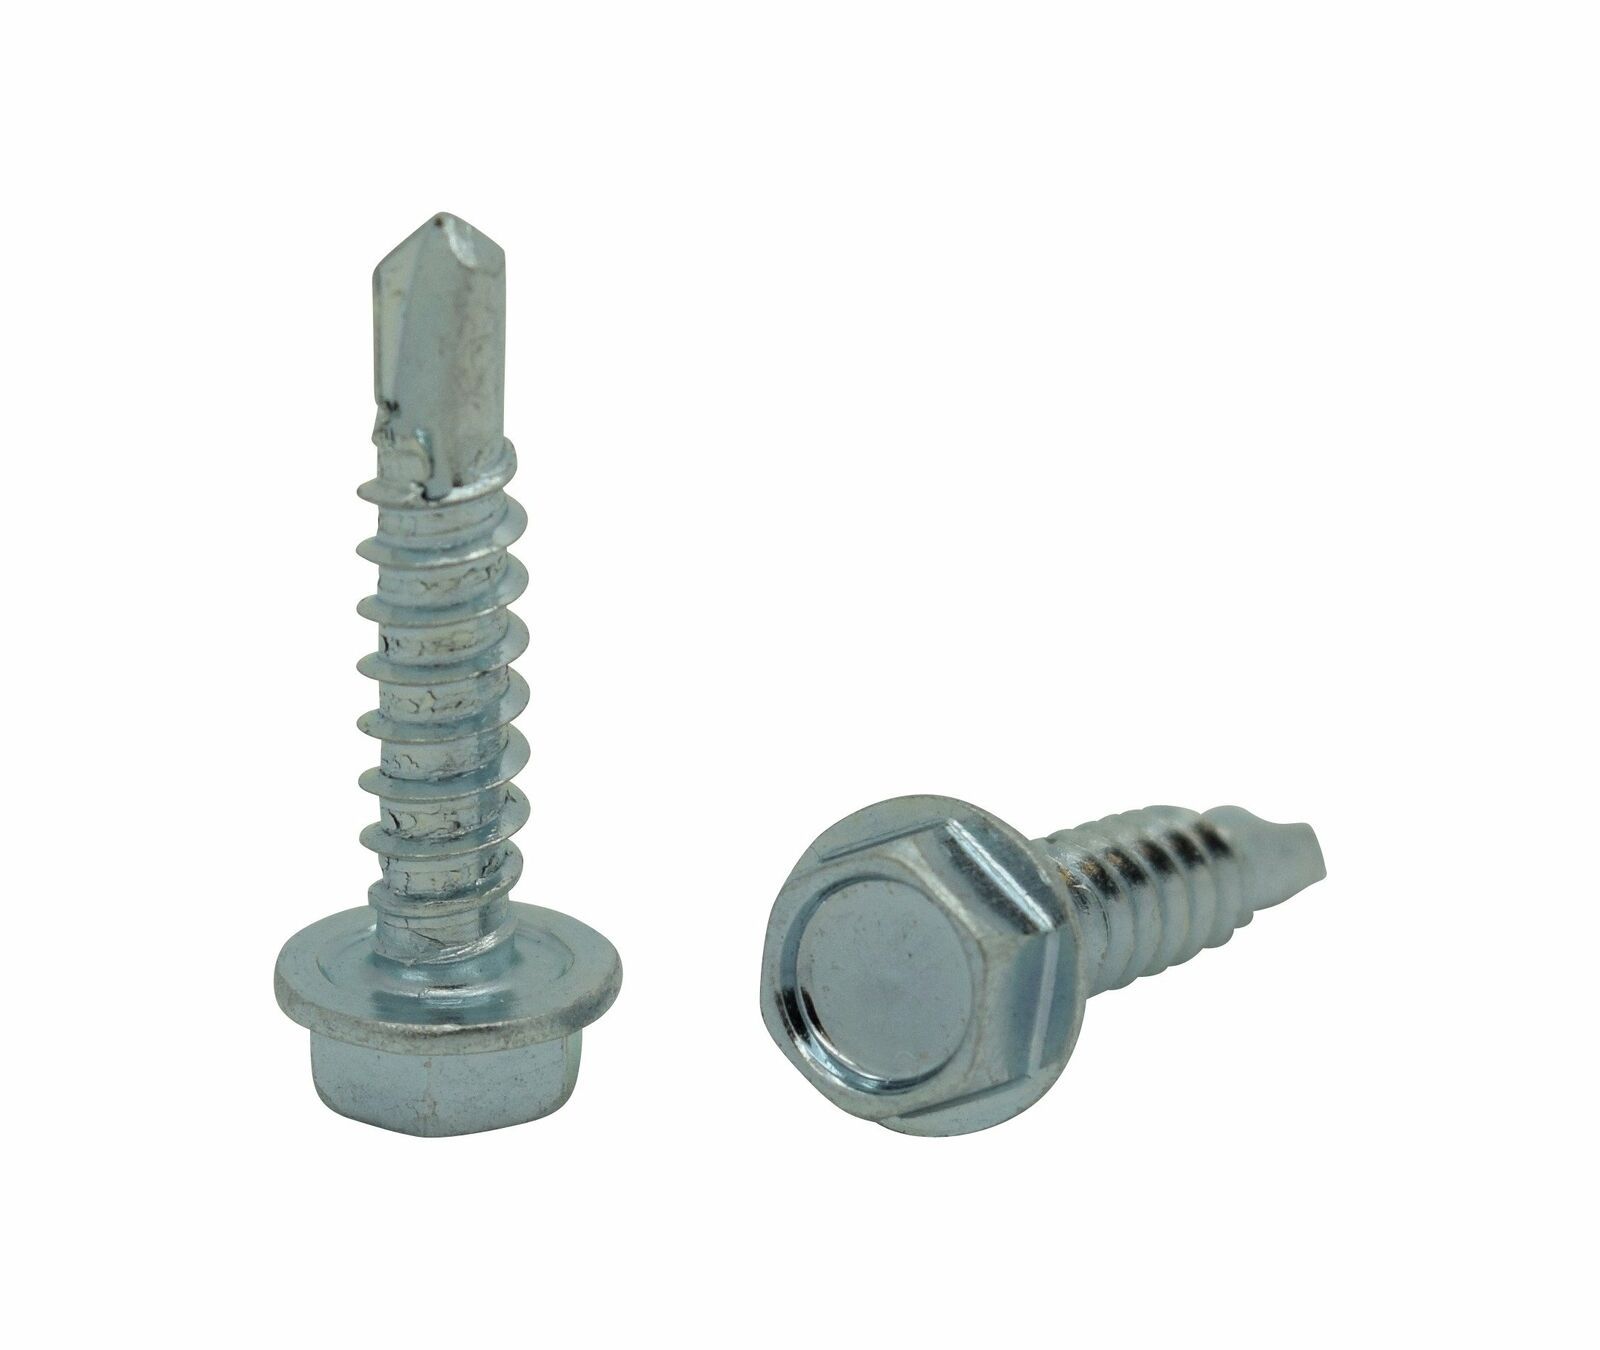 Qty 100 Steel Hex Washer Head Self Driller TEK Screw #12 x 3//4/""